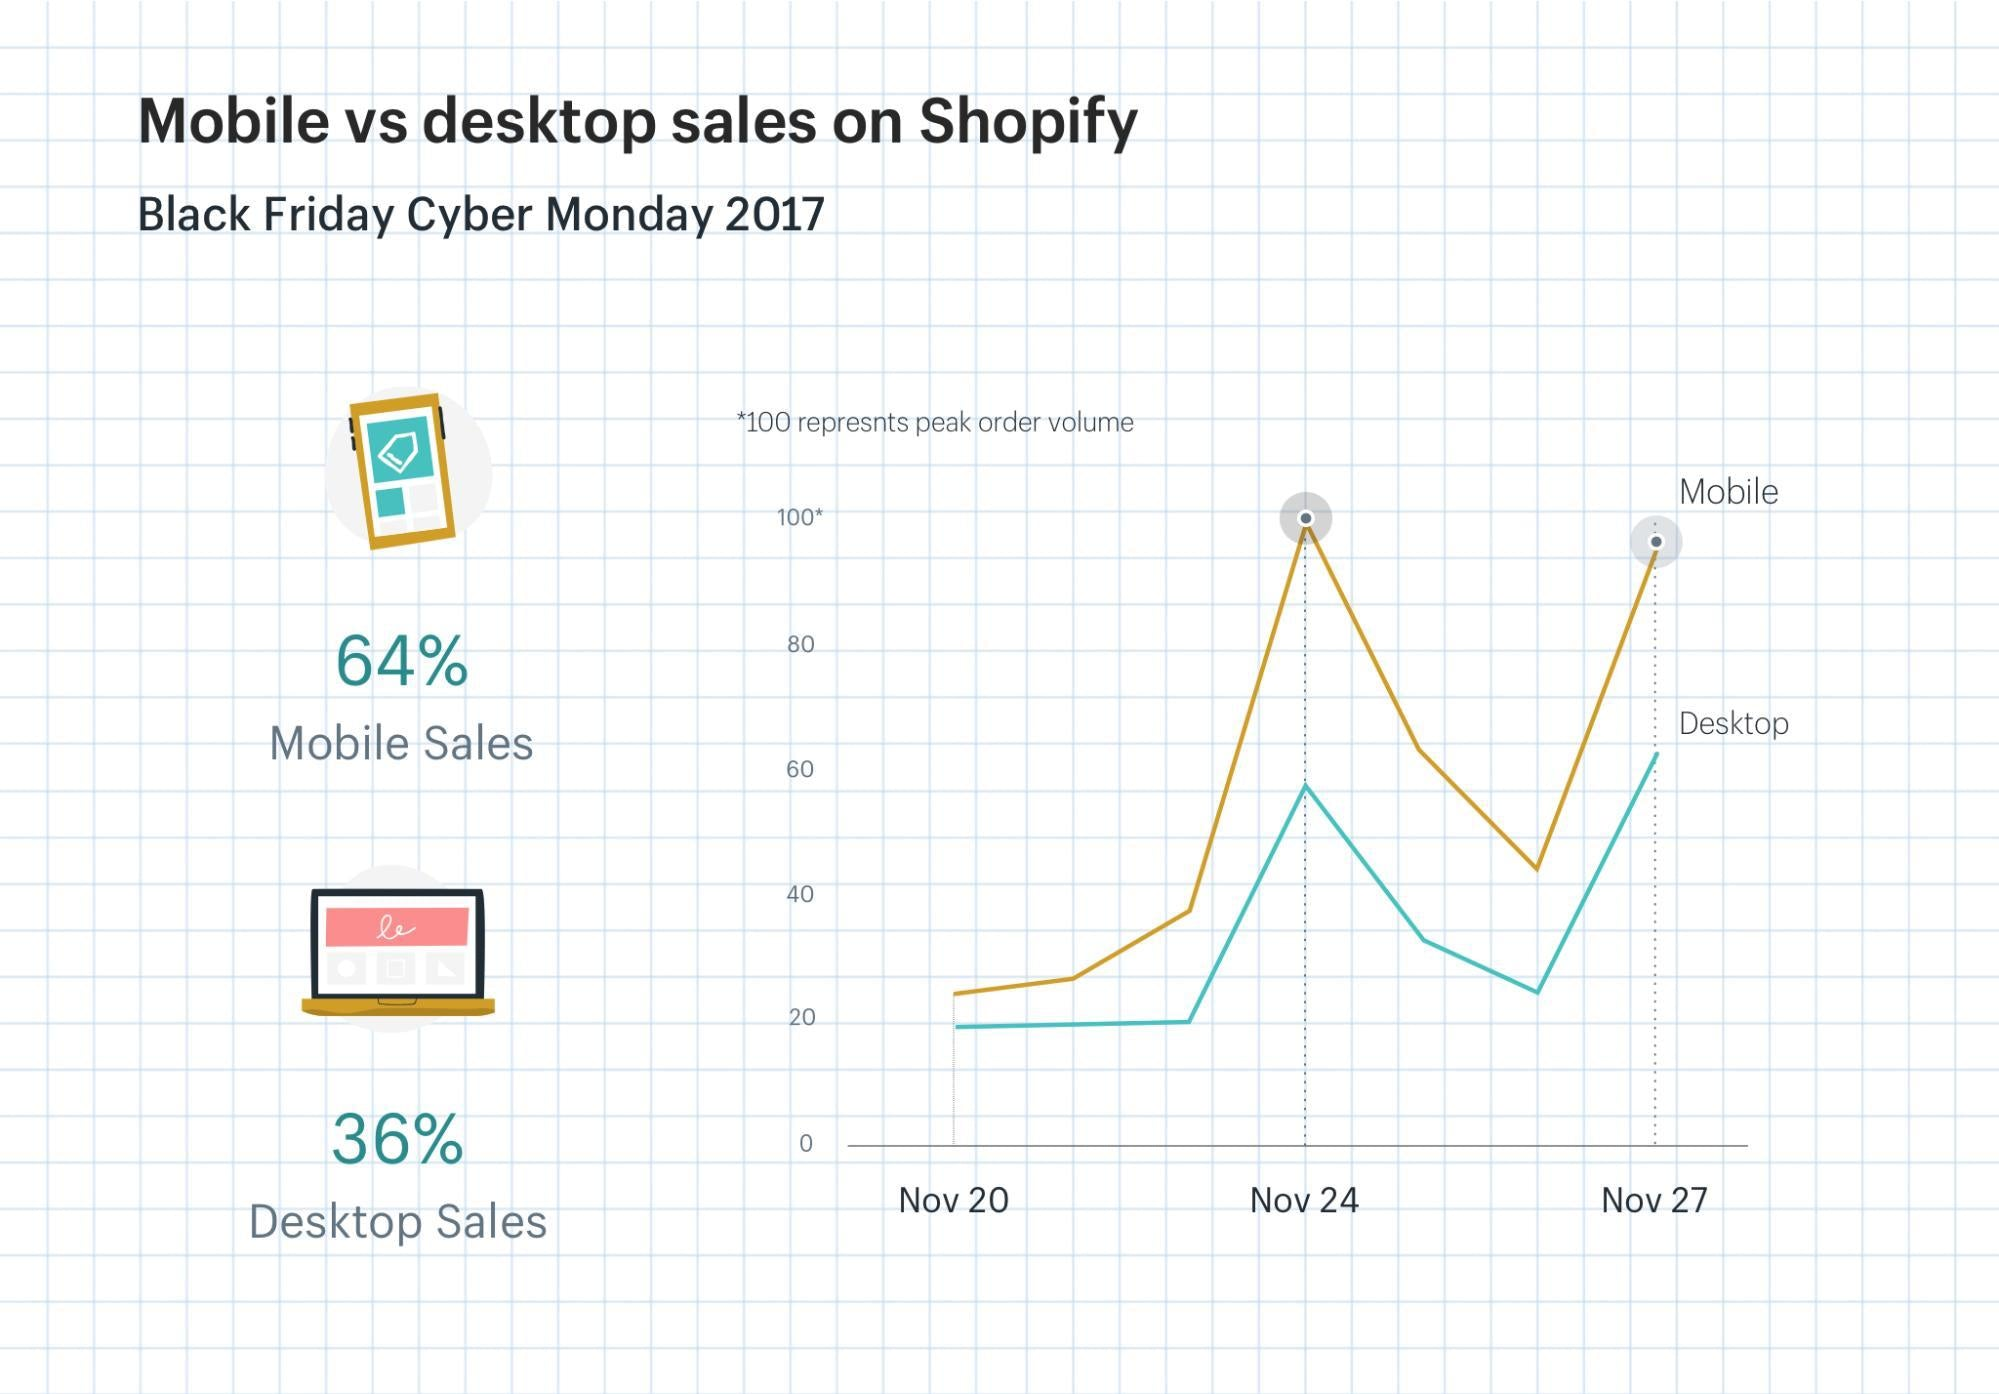 Back to school and Black Friday are both dominated by mobile commerce